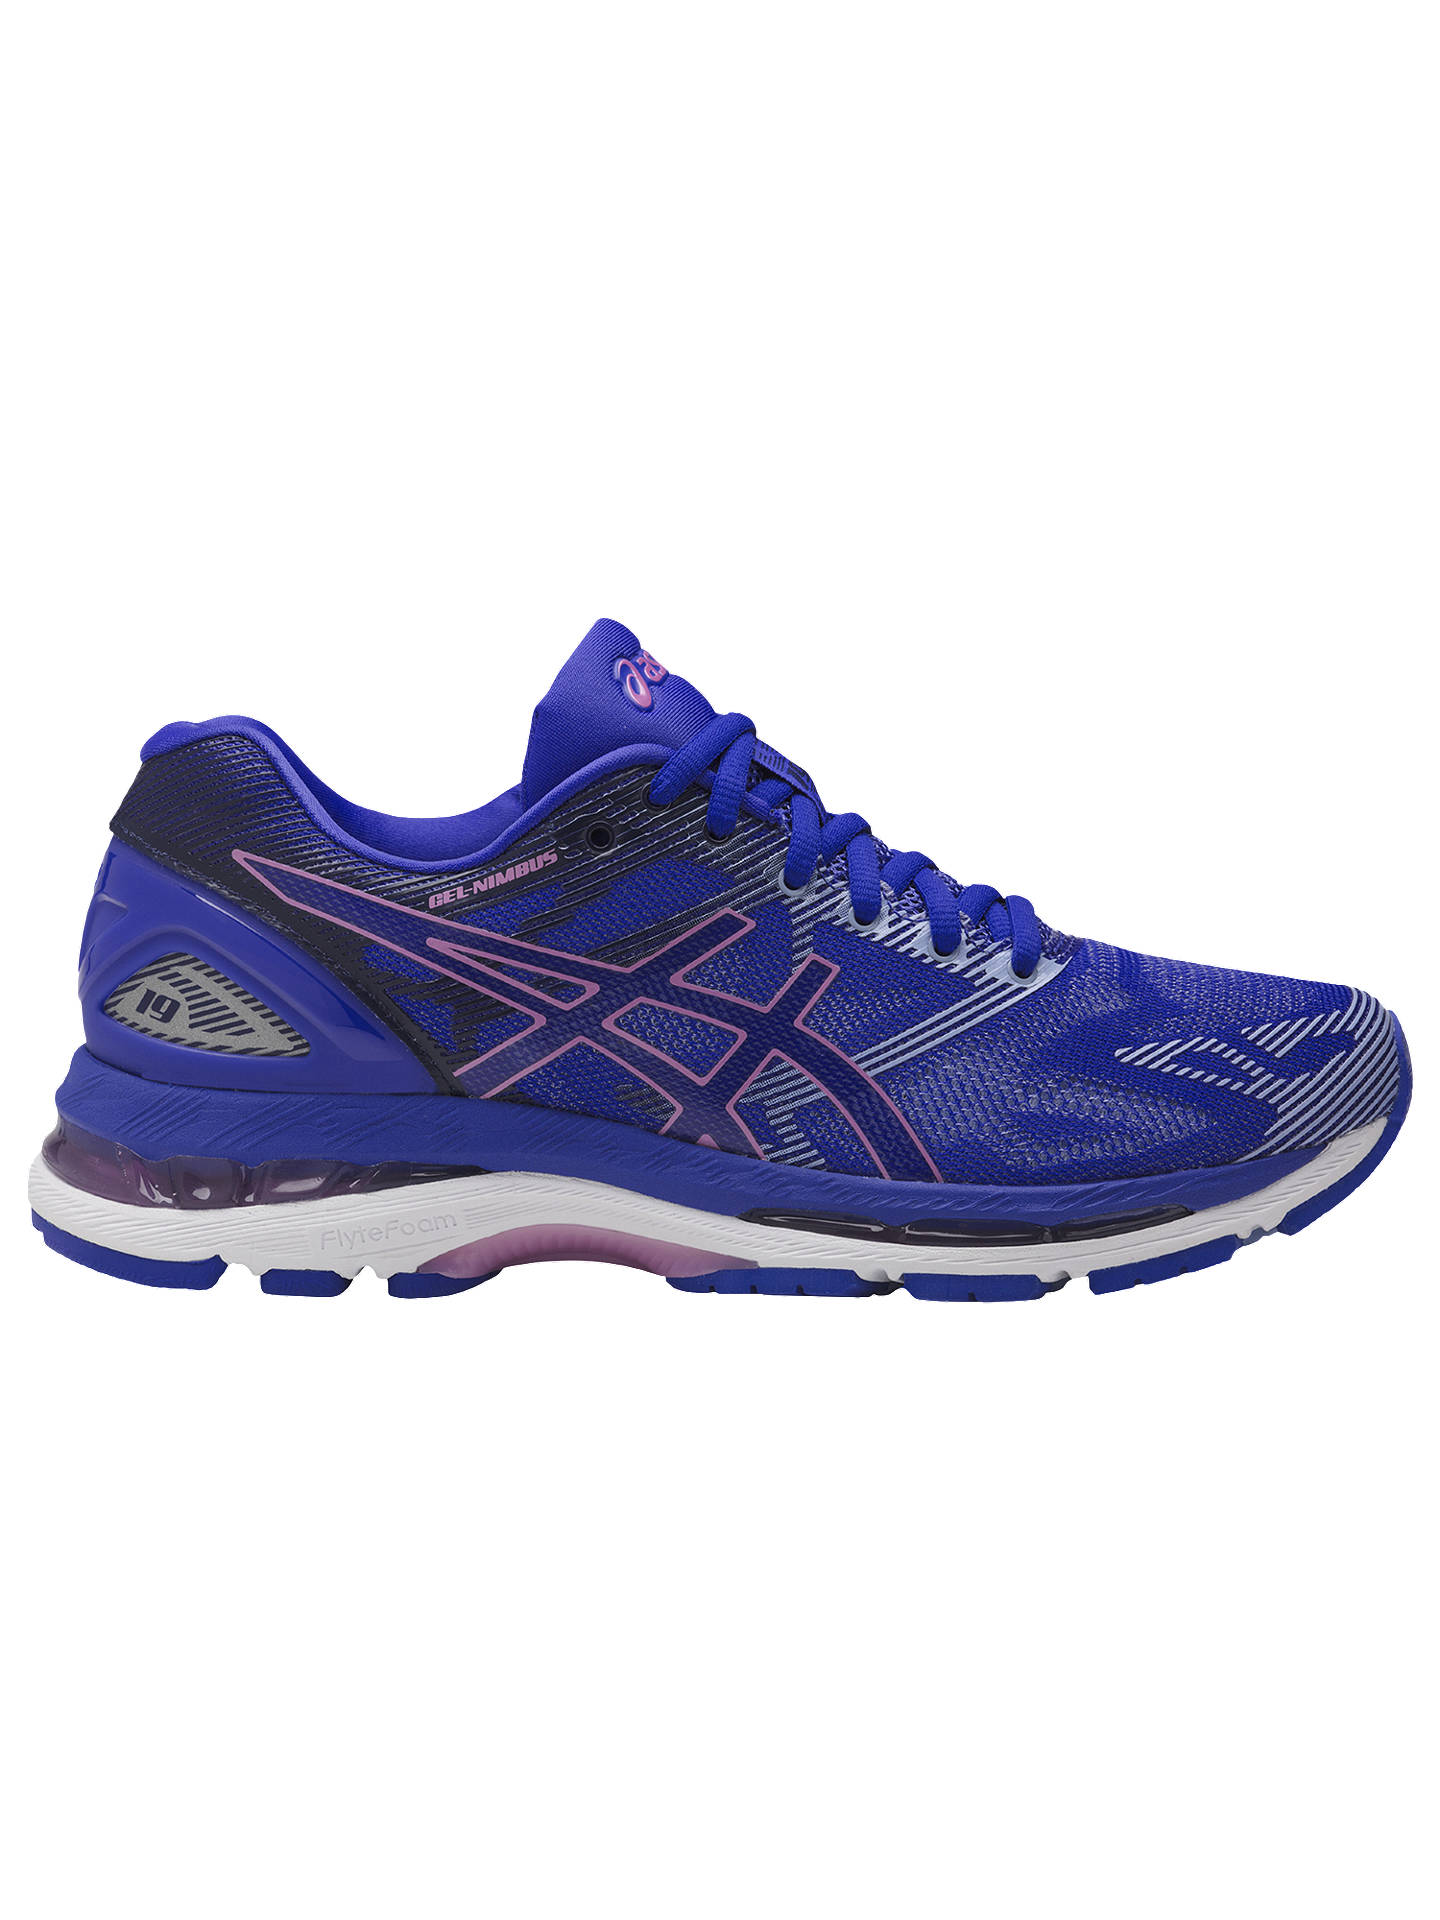 172e662630007 Buy Asics GEL-NIMBUS 19 Women's Running Shoes, Blue/Purple, 4 Online ...